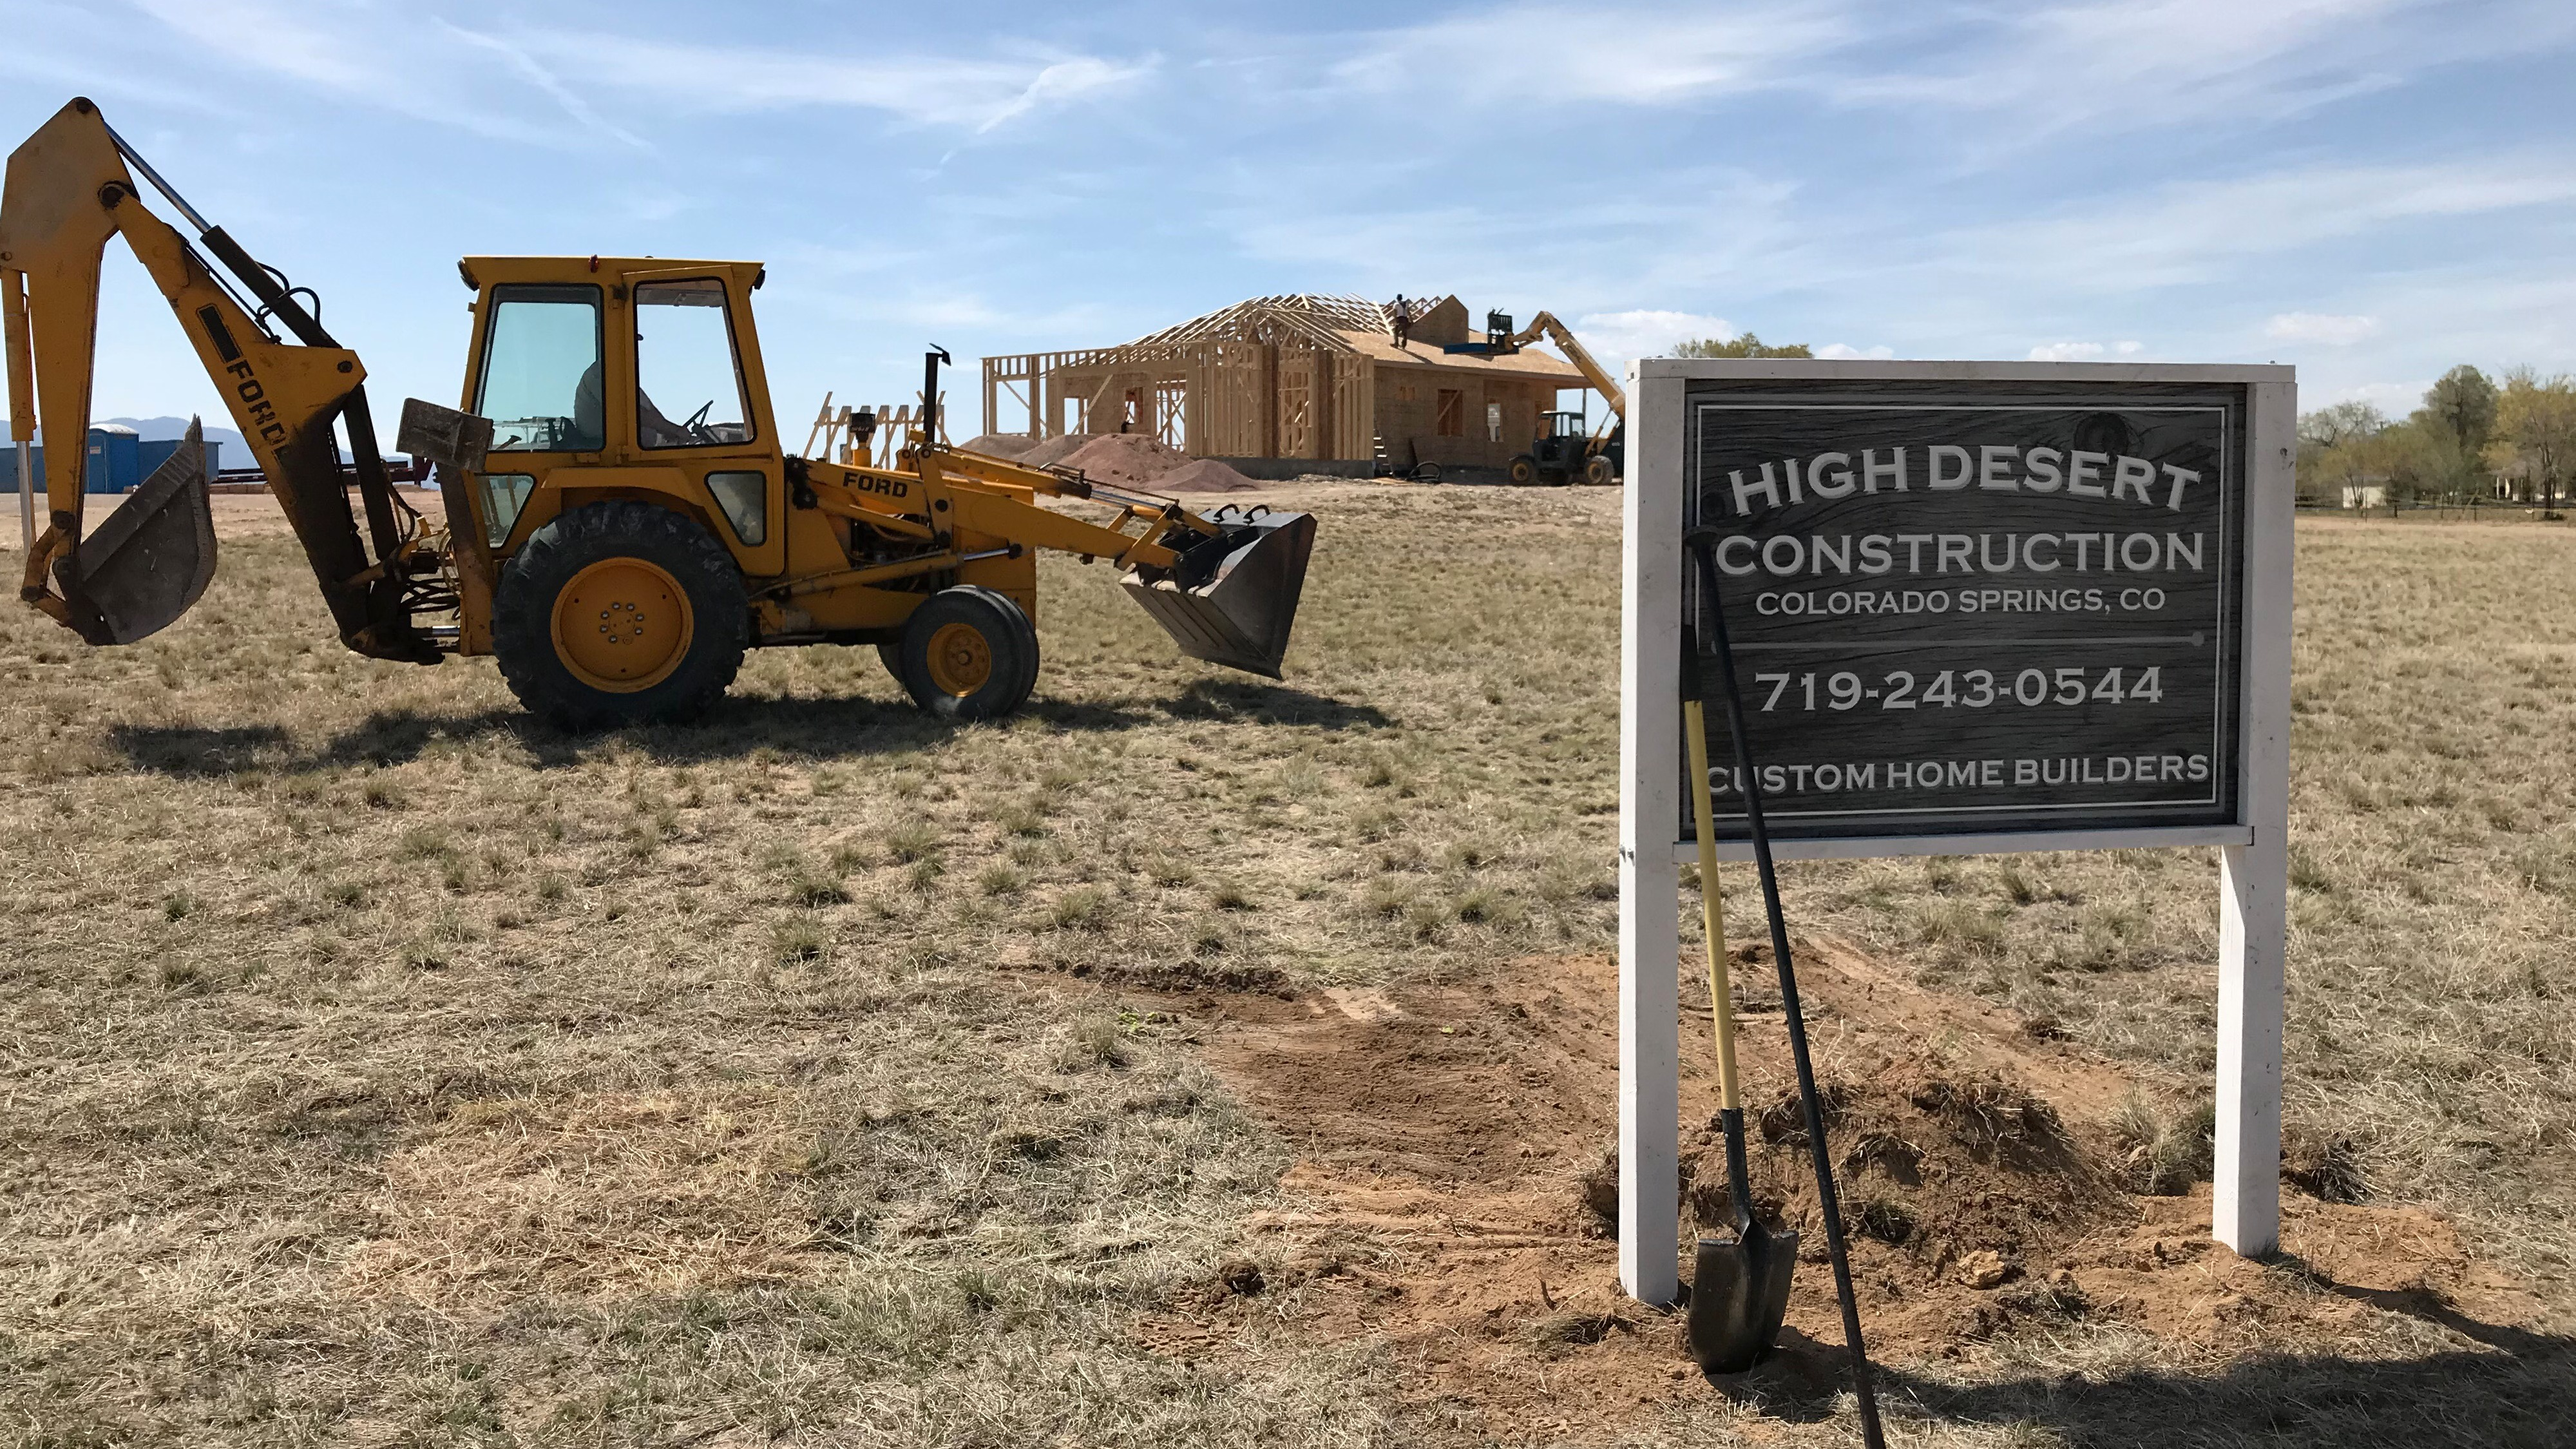 Why should you choose High Desert Construction Company?